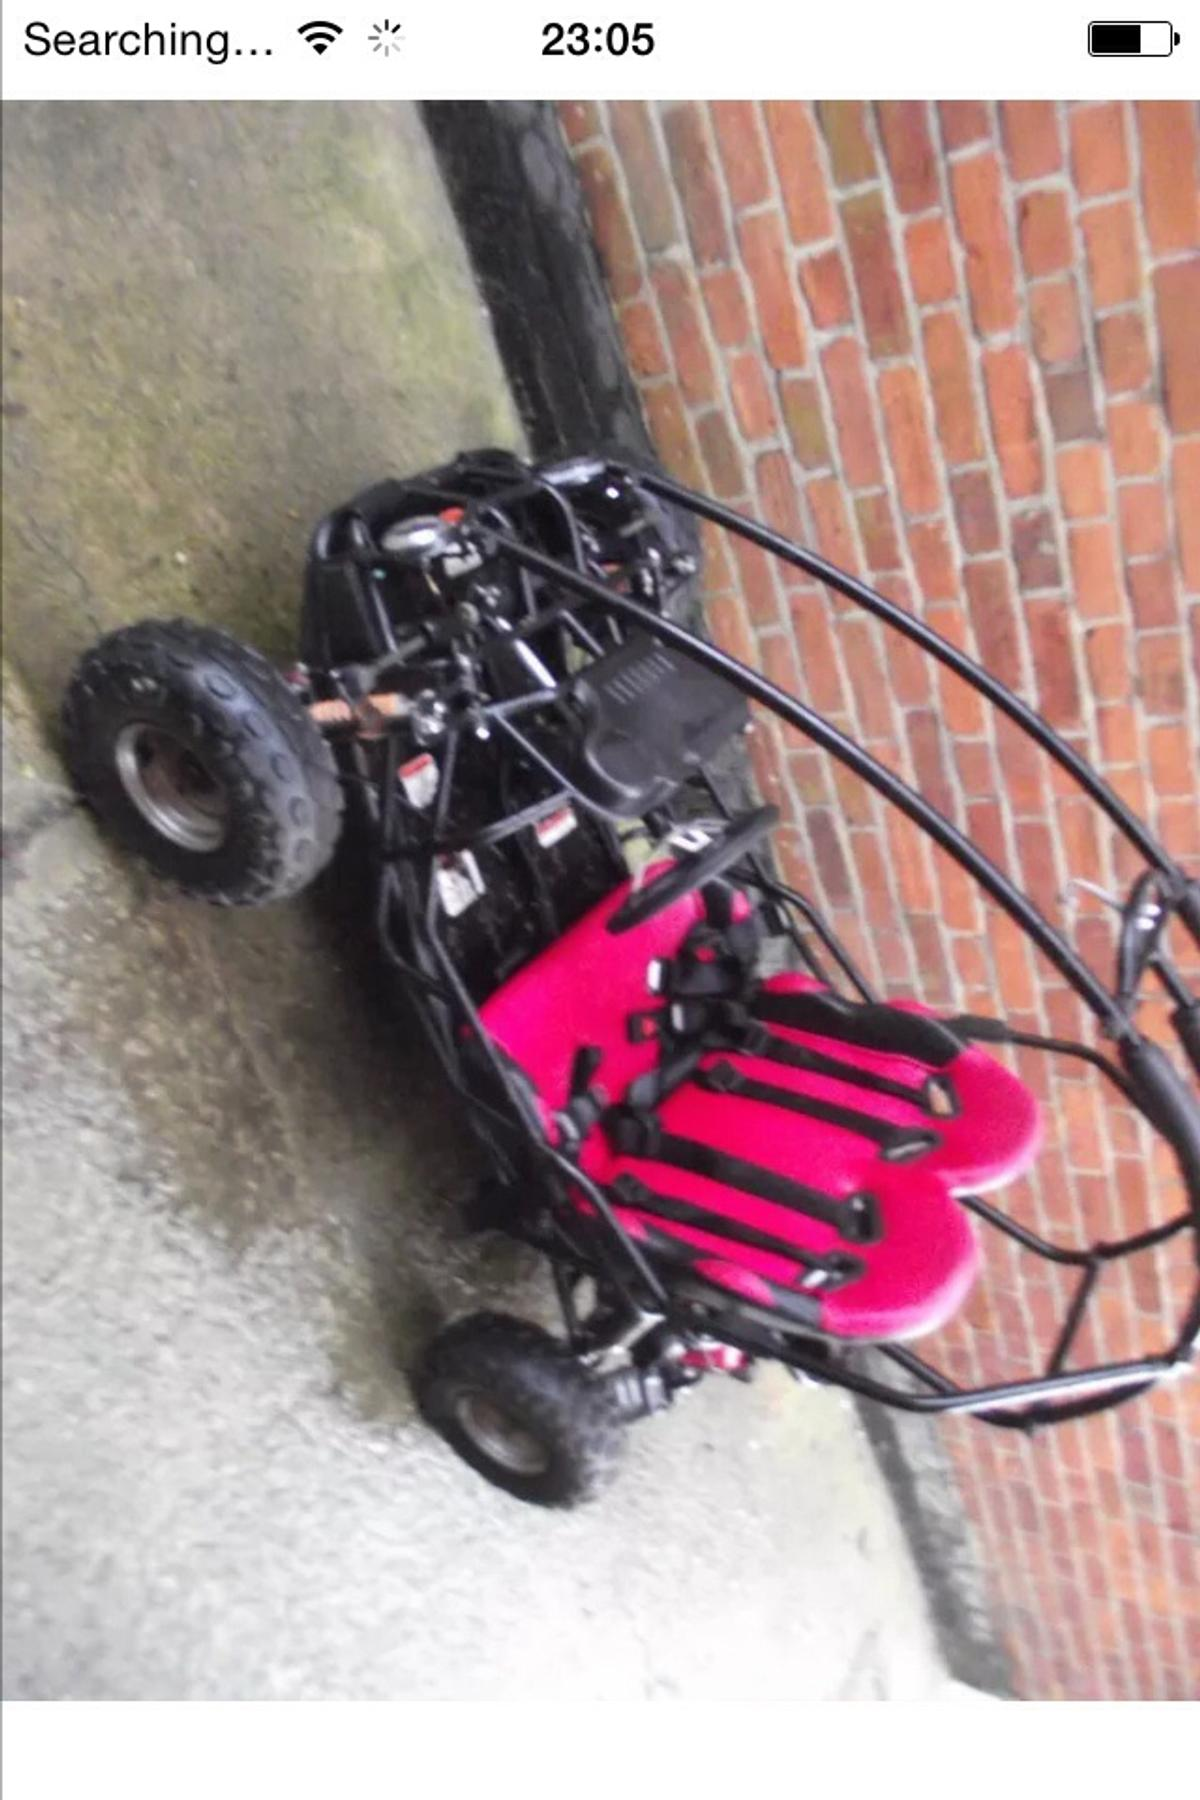 quadzilla buggy 50cc in PE19 Huntingdonshire for £220 00 for